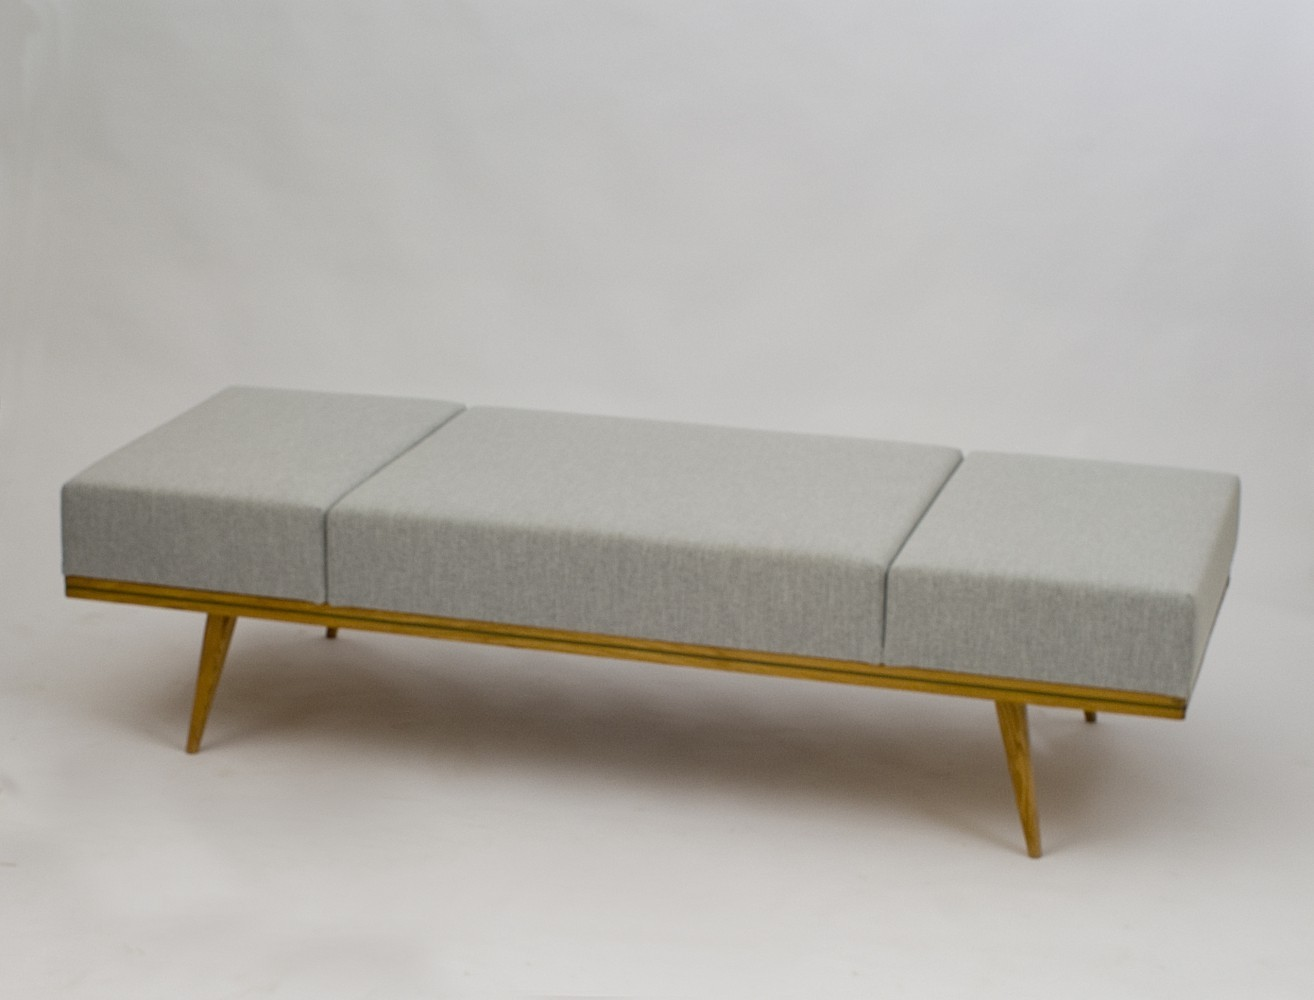 2 x vintage daybed, 1960s